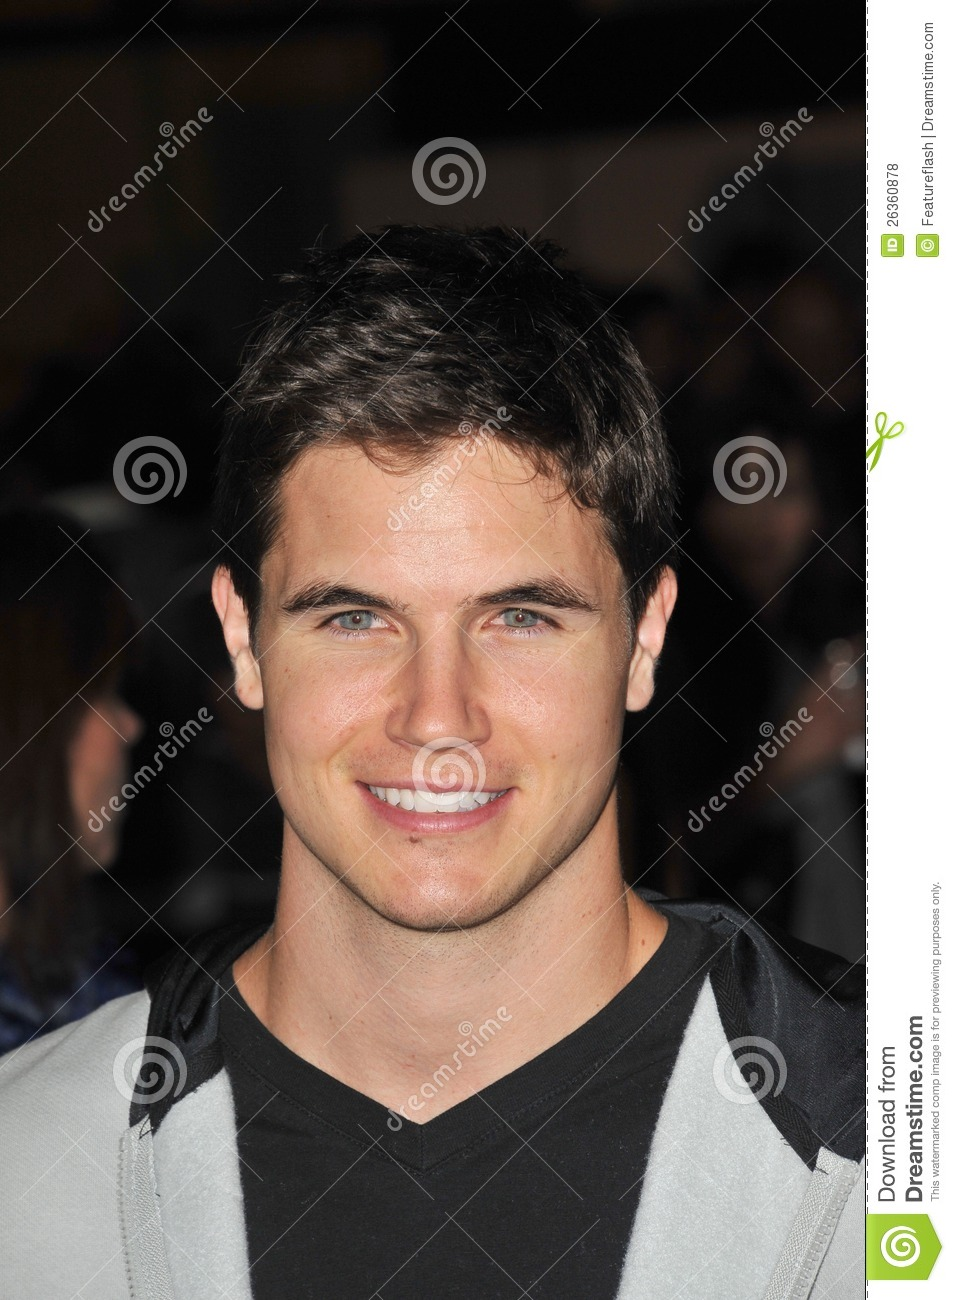 robbie amell fisicorobbie amell gif, robbie amell films, robbie amell gif hunt, robbie amell ronnie raymond, robbie amell movies, robbie amell wiki, robbie amell wife, robbie amell height, robbie amell wdw, robbie amell fan, robbie amell movied, robbie amell vk, robbie amell fisico, robbie amell filmography, robbie amell series, robbie amell wikipedia, robbie amell kinopoisk, robbie amell tattoo, robbie amell instagram, robbie amell фильмография